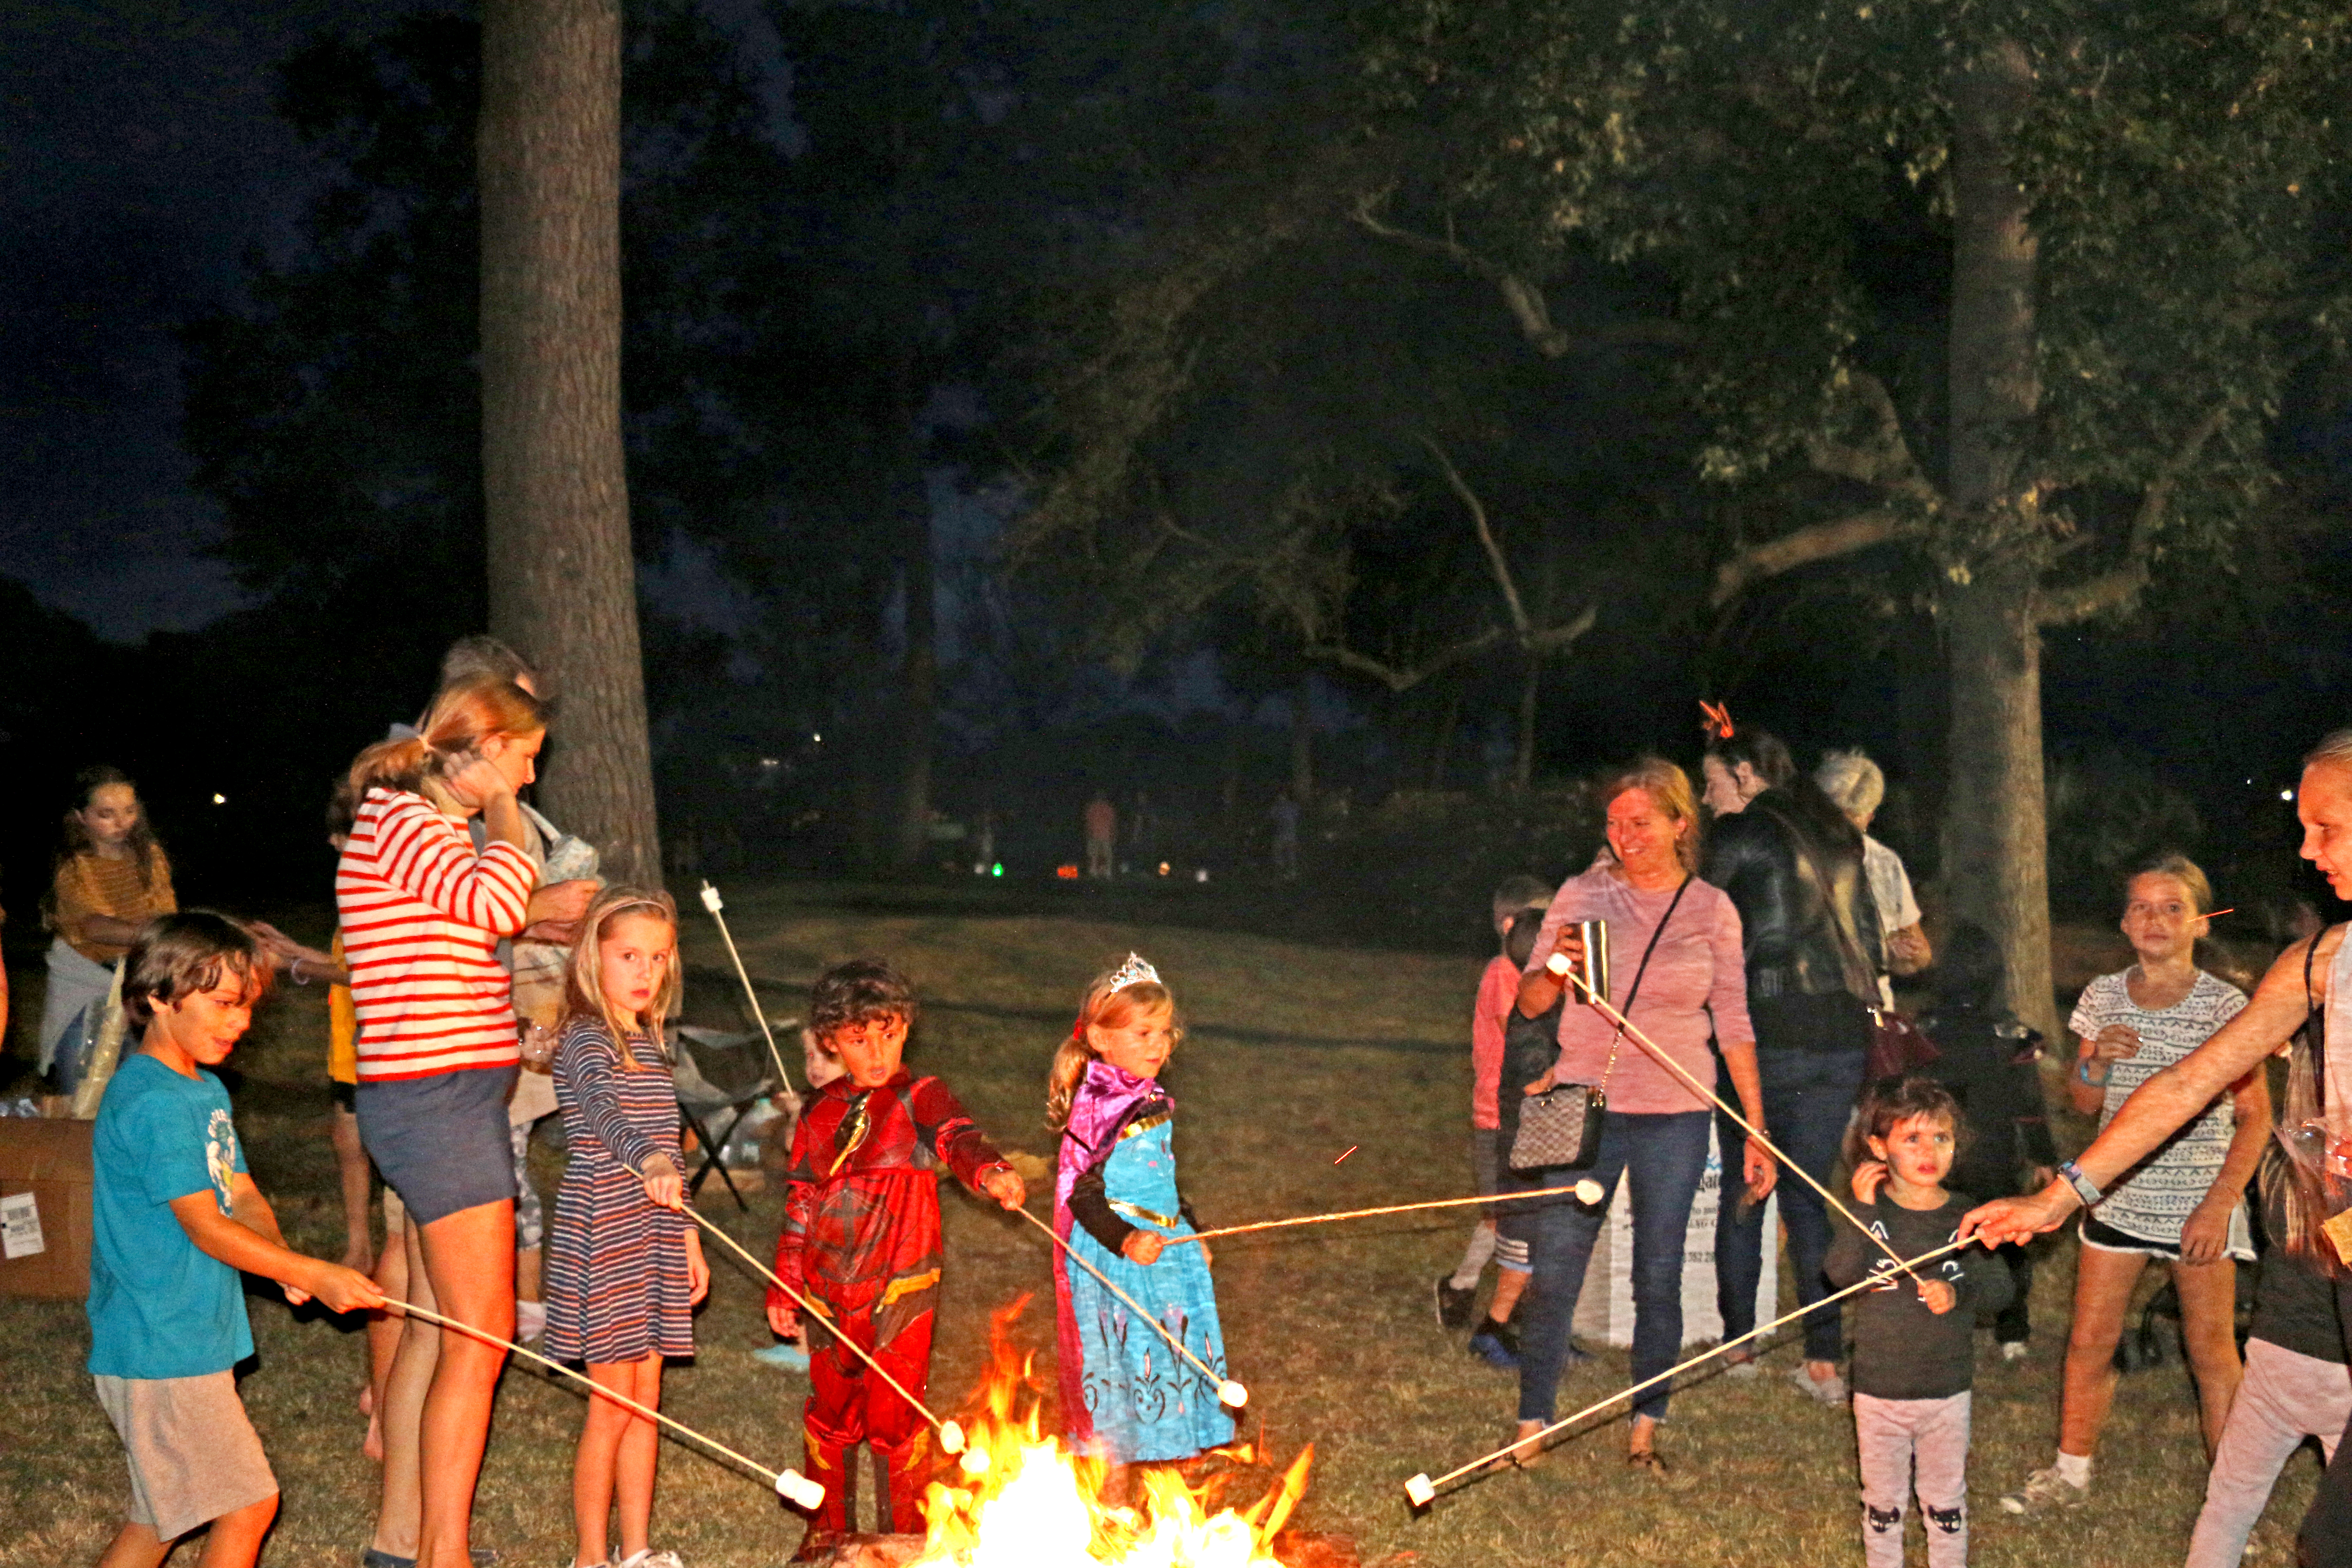 Pumpkins and costumes and roasting marshmallows, oh my!